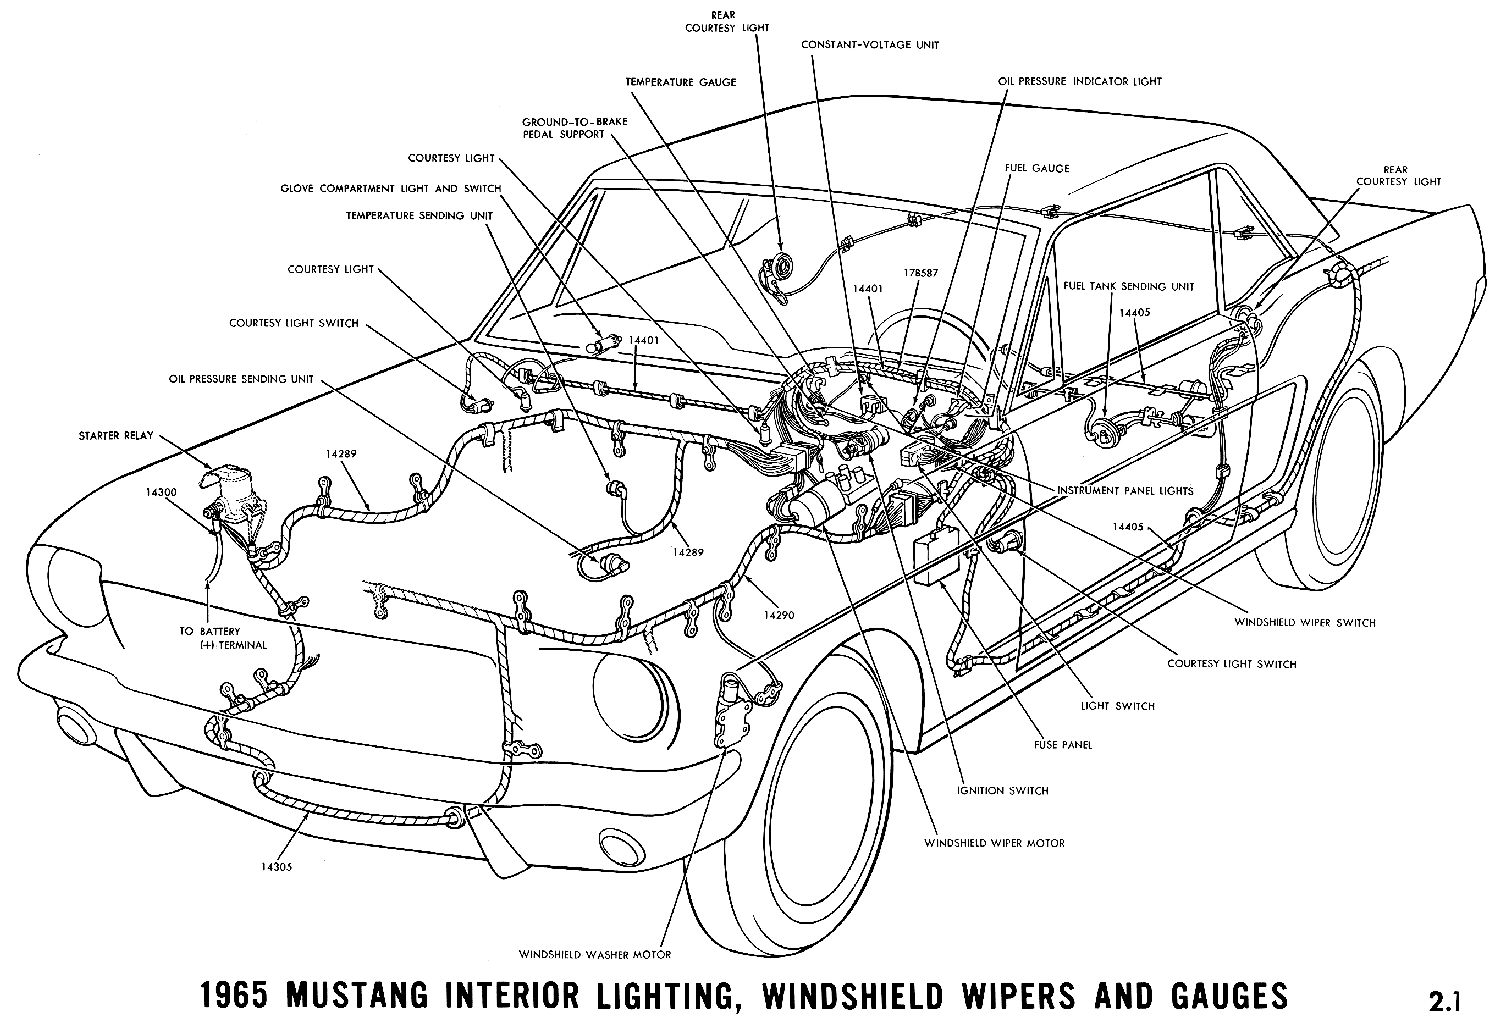 1965 Mustang Wiring Diagrams Average Joe Restoration Fuse Block Diagram For 1967 Interior Lights Windshield Wiper And Gauges Pictorial Or Schematic